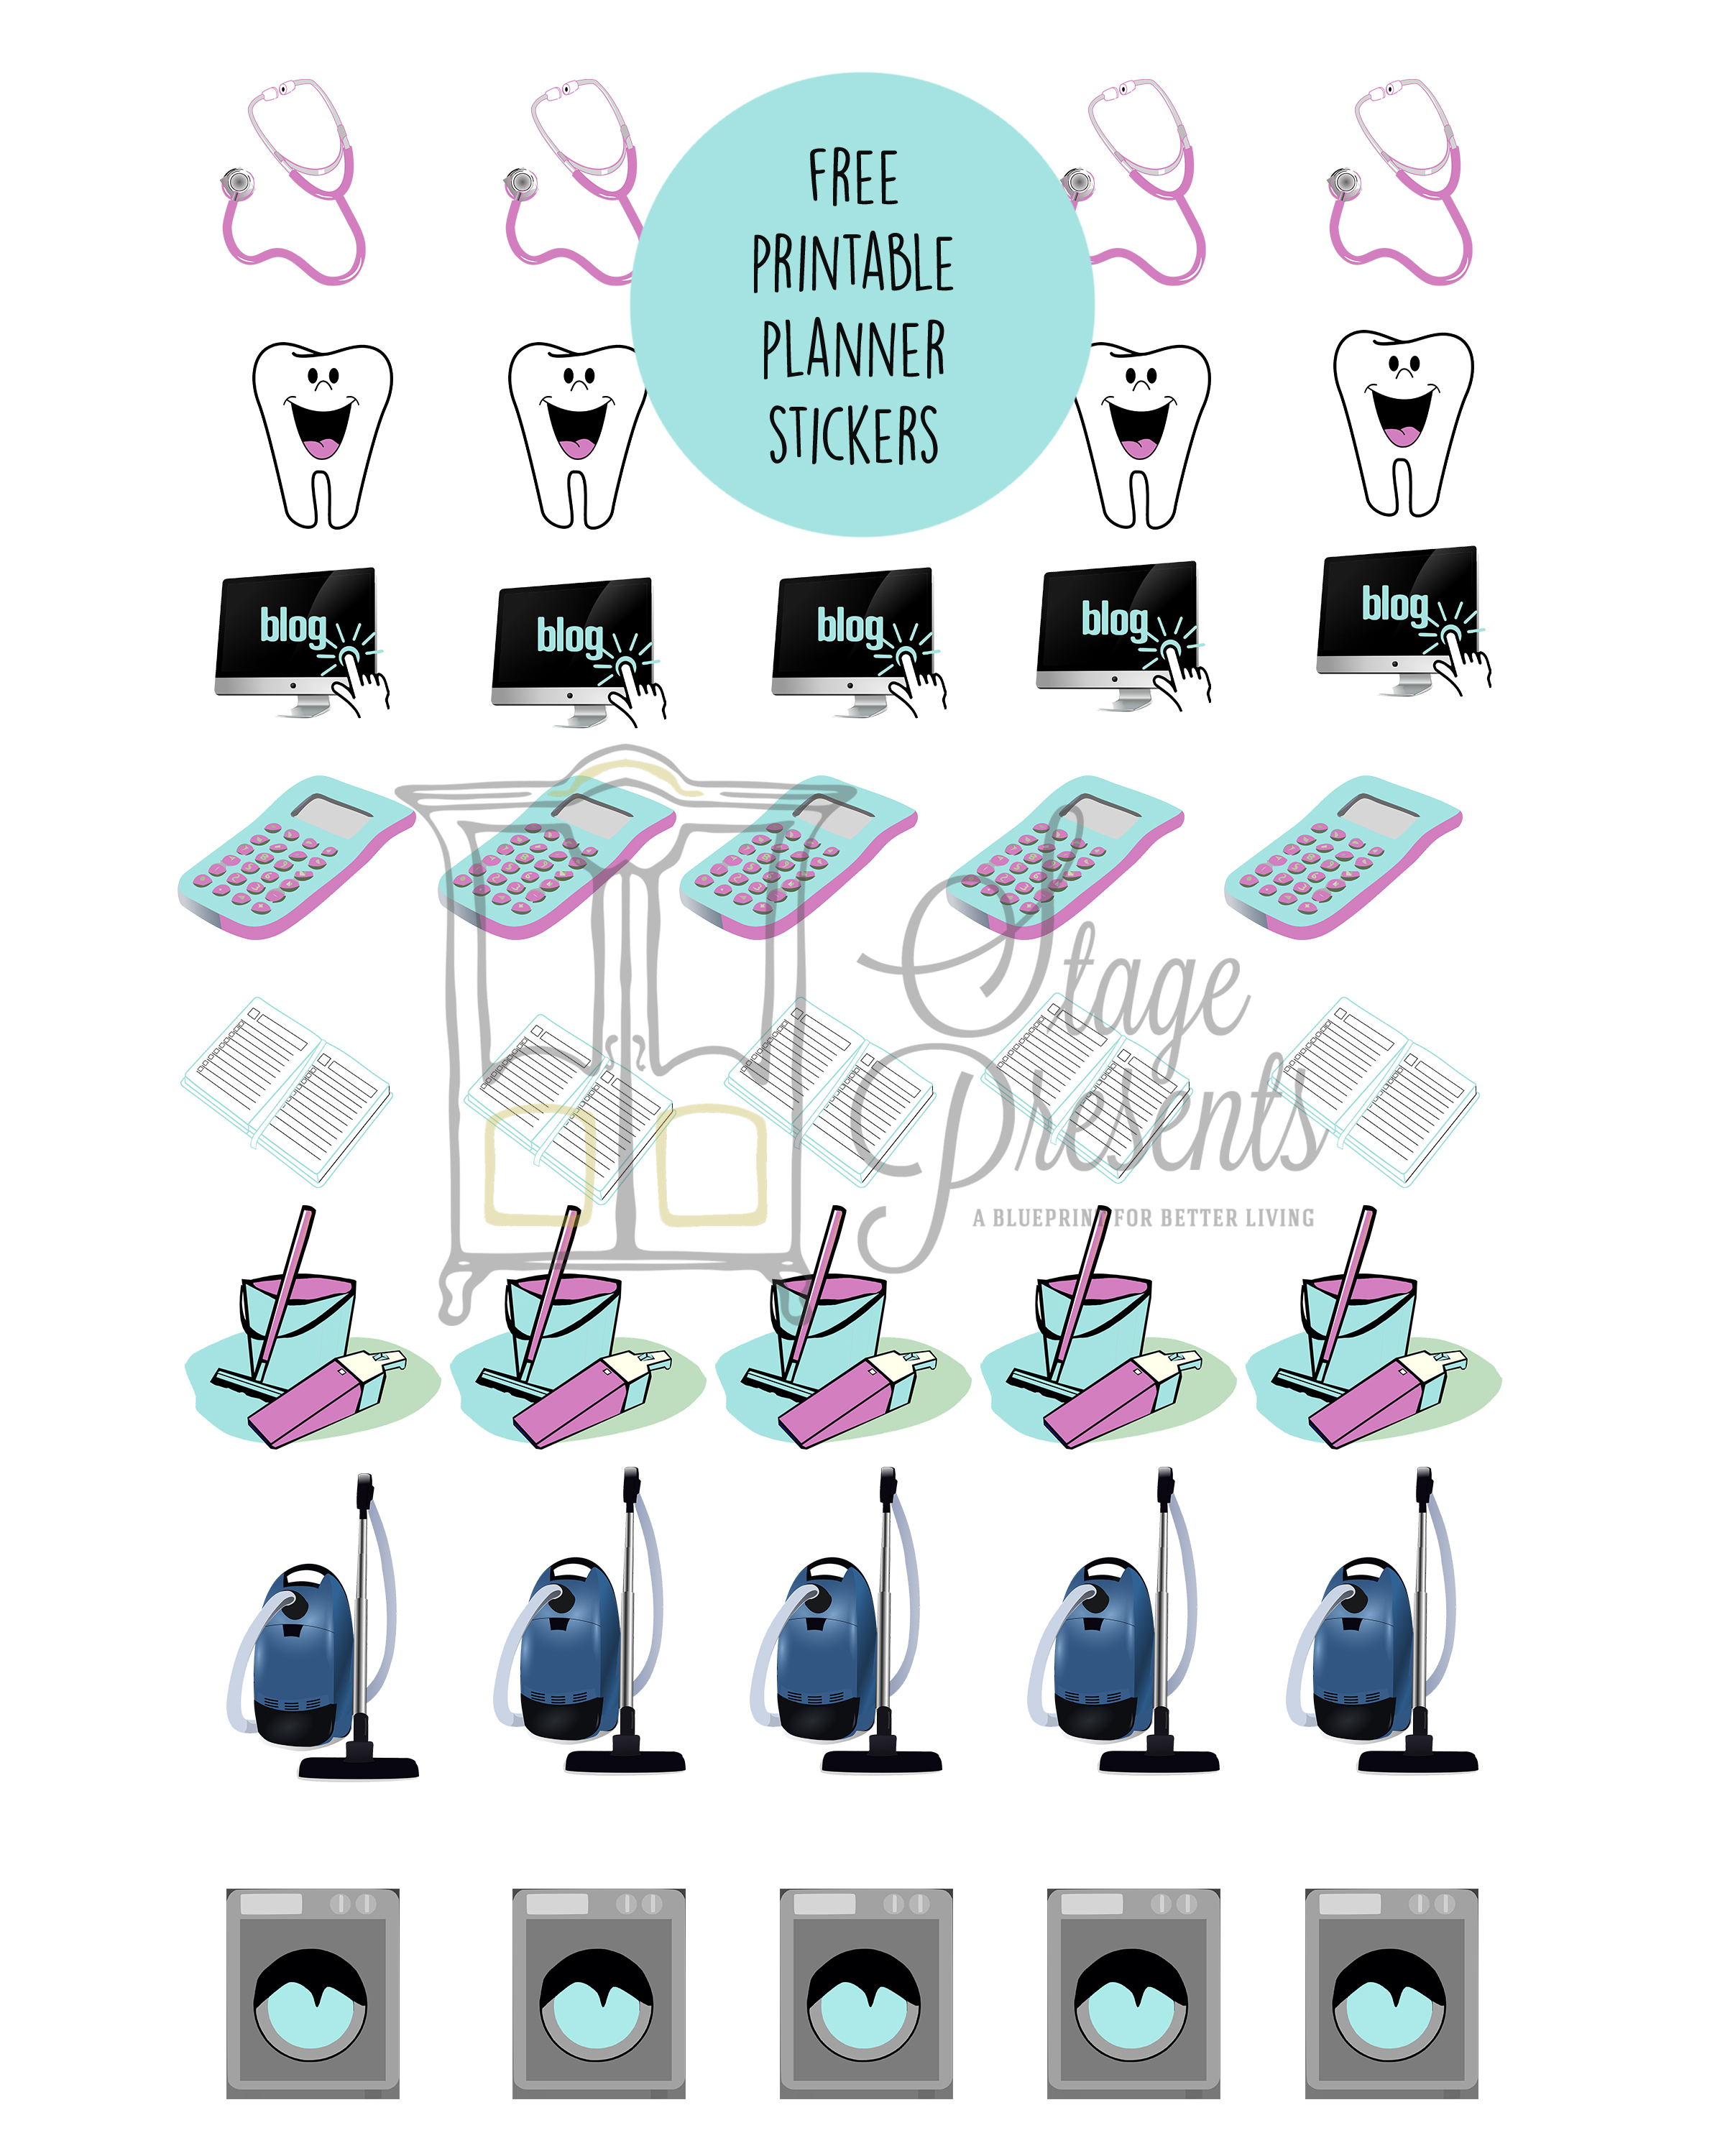 Free Printable Planner Stickers for Download stage-presents.com